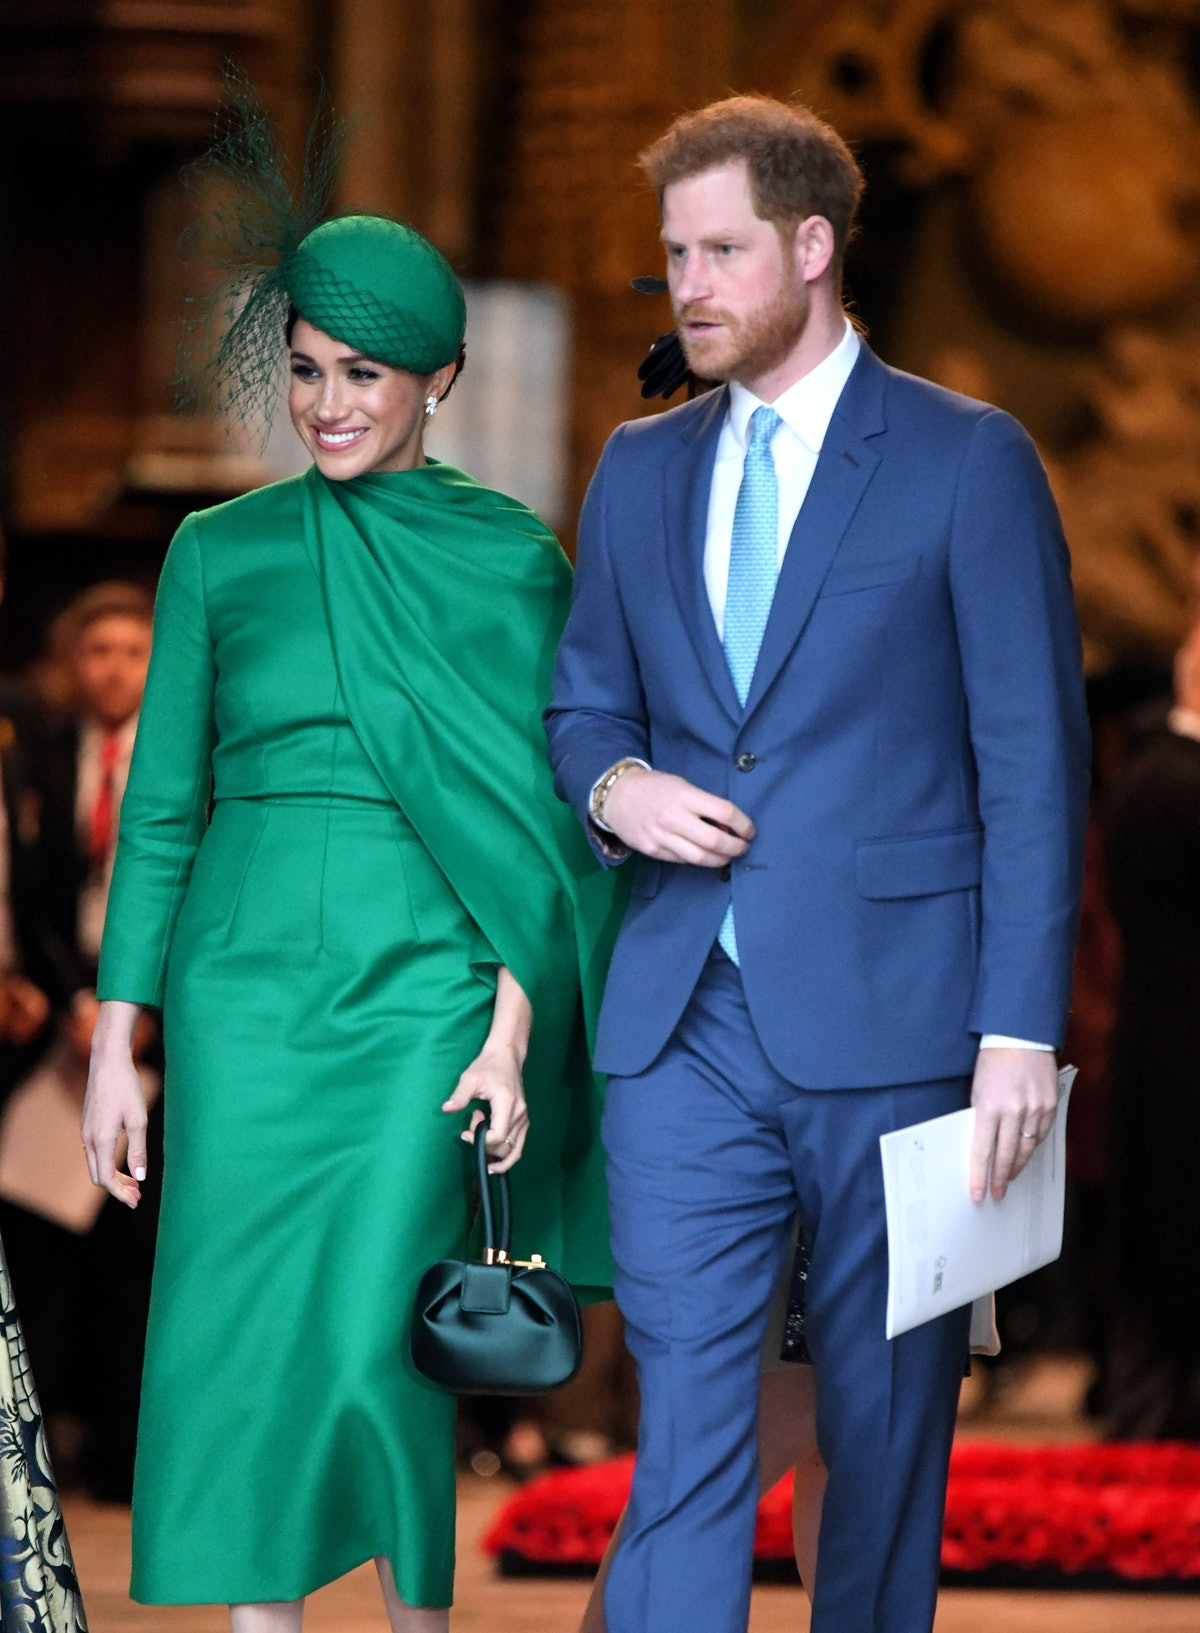 Why Did Meghan & Harry Really Quit Being Royals? 'Finding Freedom' Gives New Insight